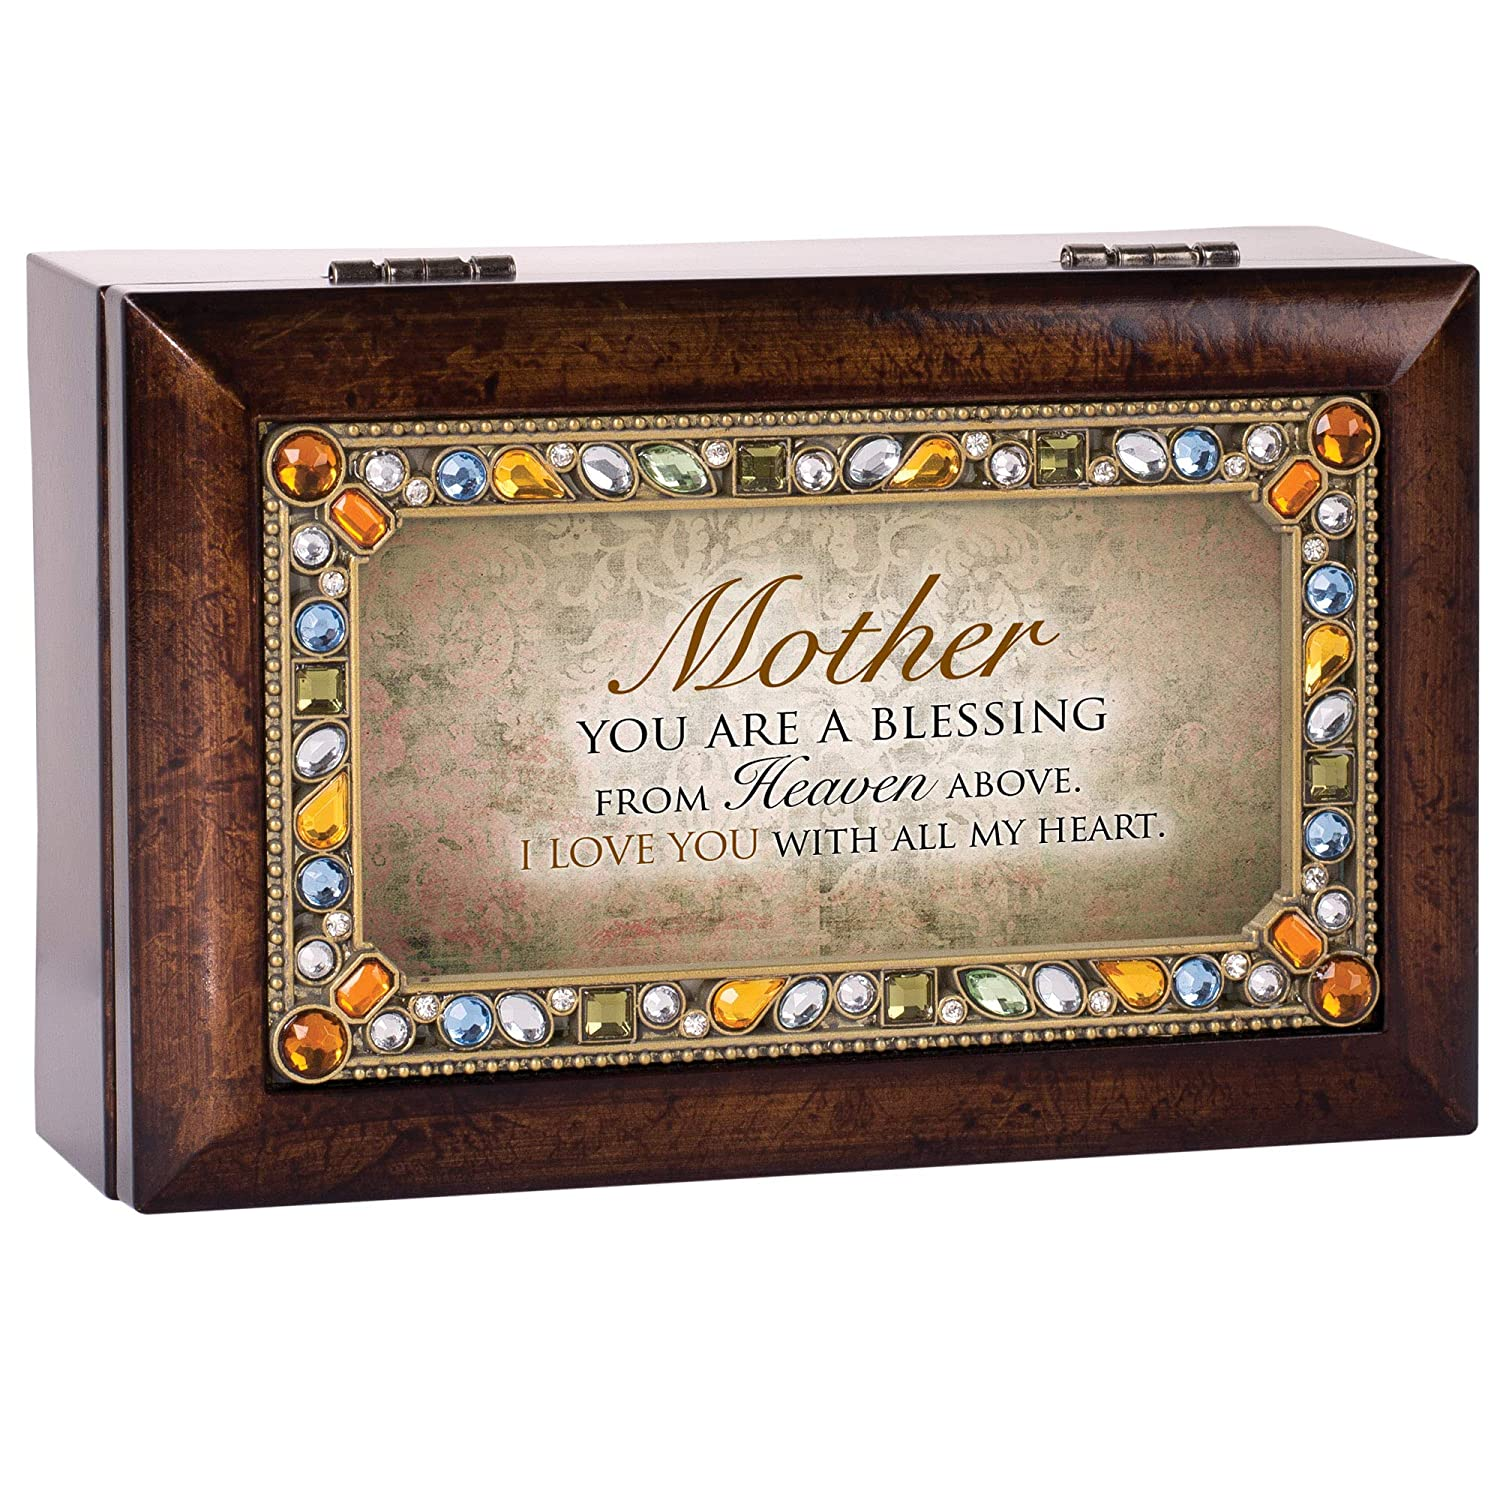 Cottage Garden Mother Blessing Heaven Amber Earth Tone Jeweled Petite Music Box Plays Amazing Grace